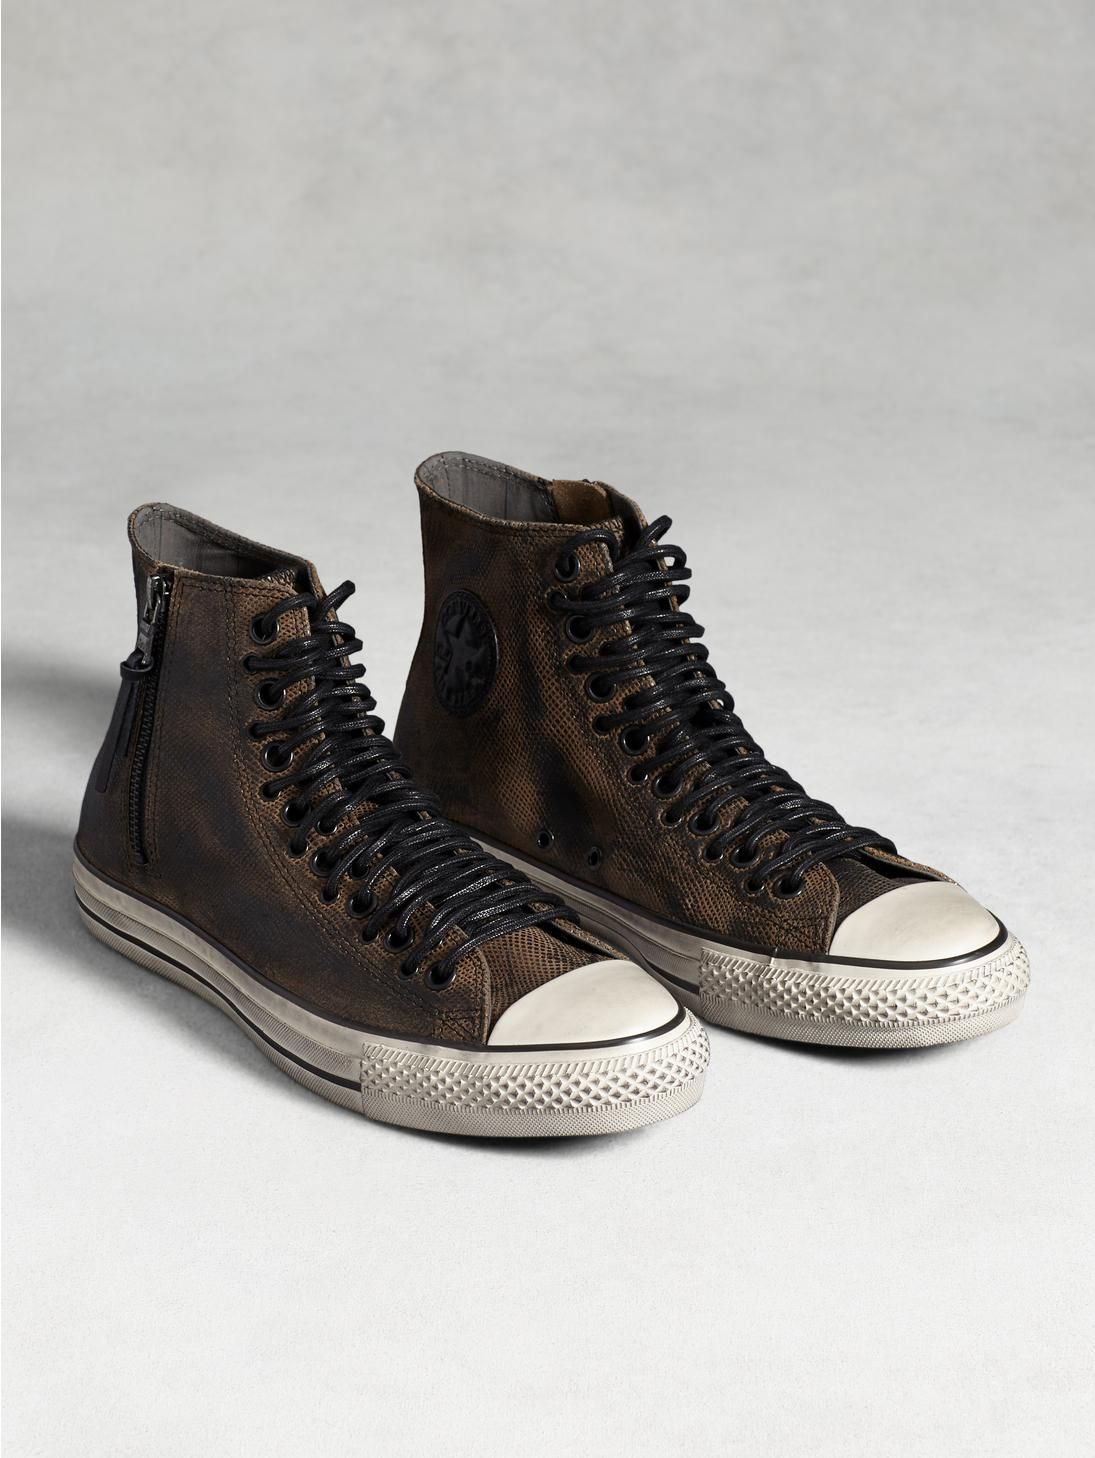 033107718acd Chuck Taylor Multi Eye High Top - John Varvatos